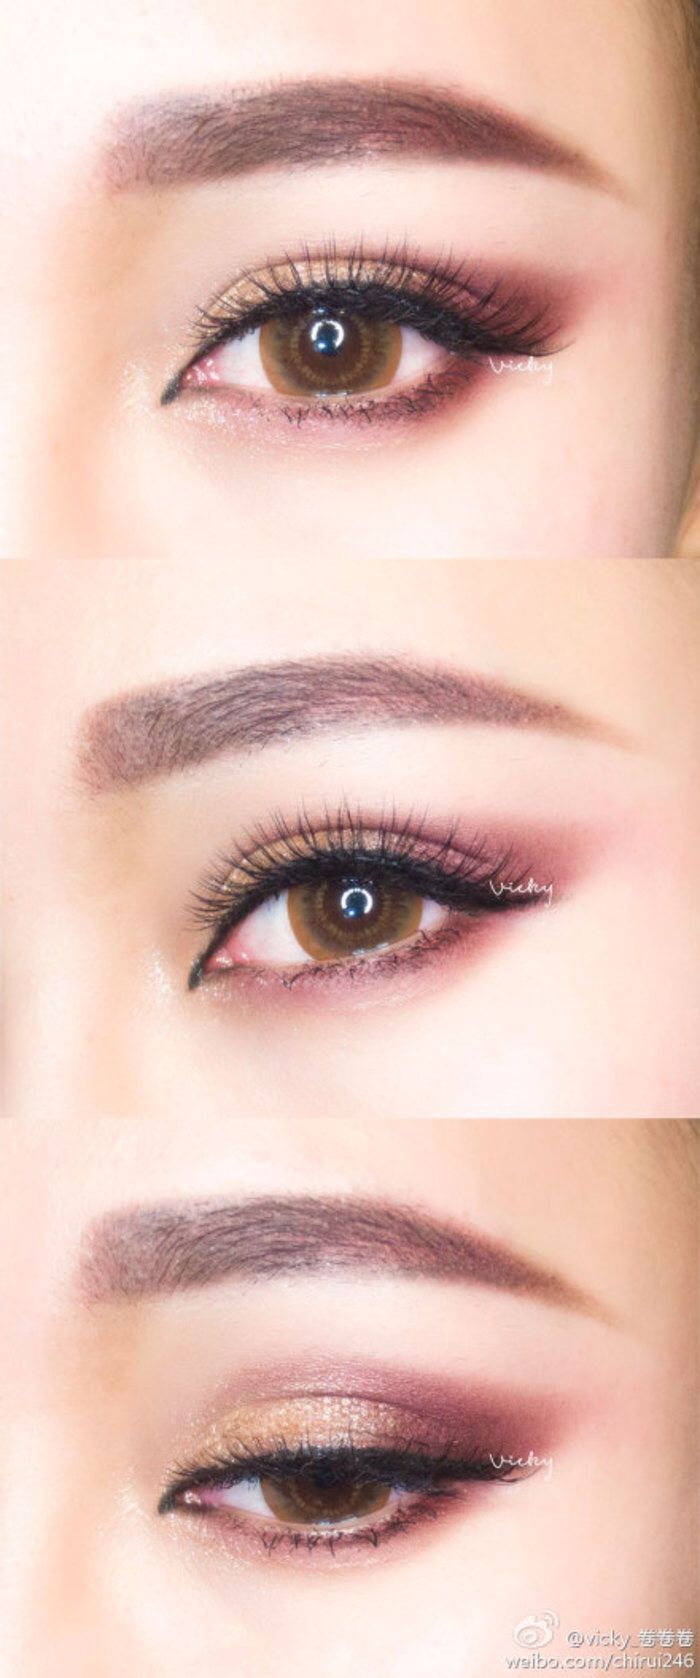 Best Eye Makeup Tips And Tricks For Small Eyes: Best 25+ Asian Eye Makeup Ideas On Pinterest